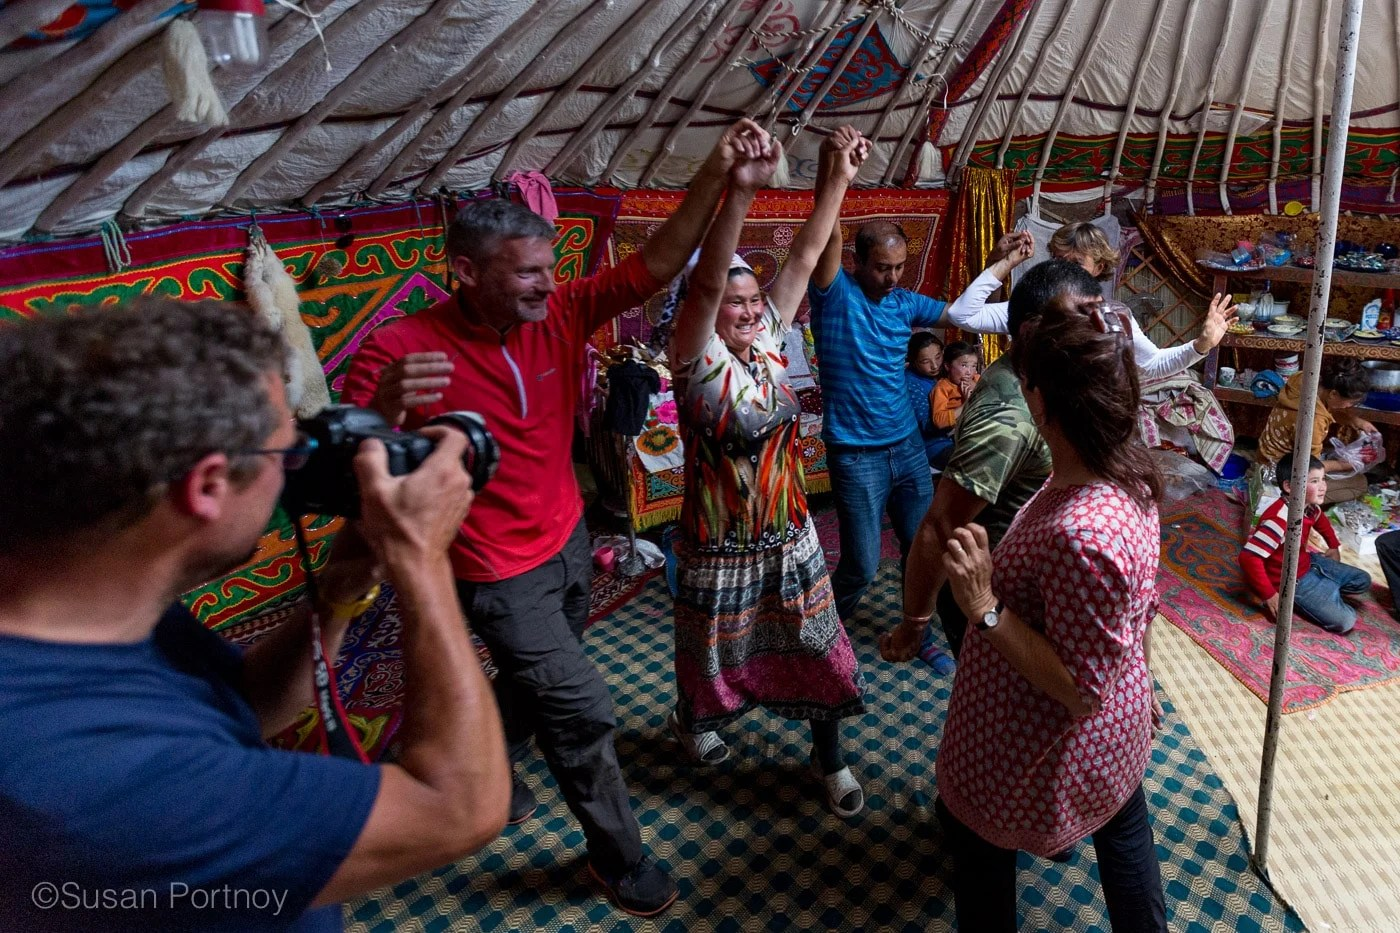 People dancing in a line holding hands at a Kazakh Mongolian Dance Party - The Insatiable Traveler